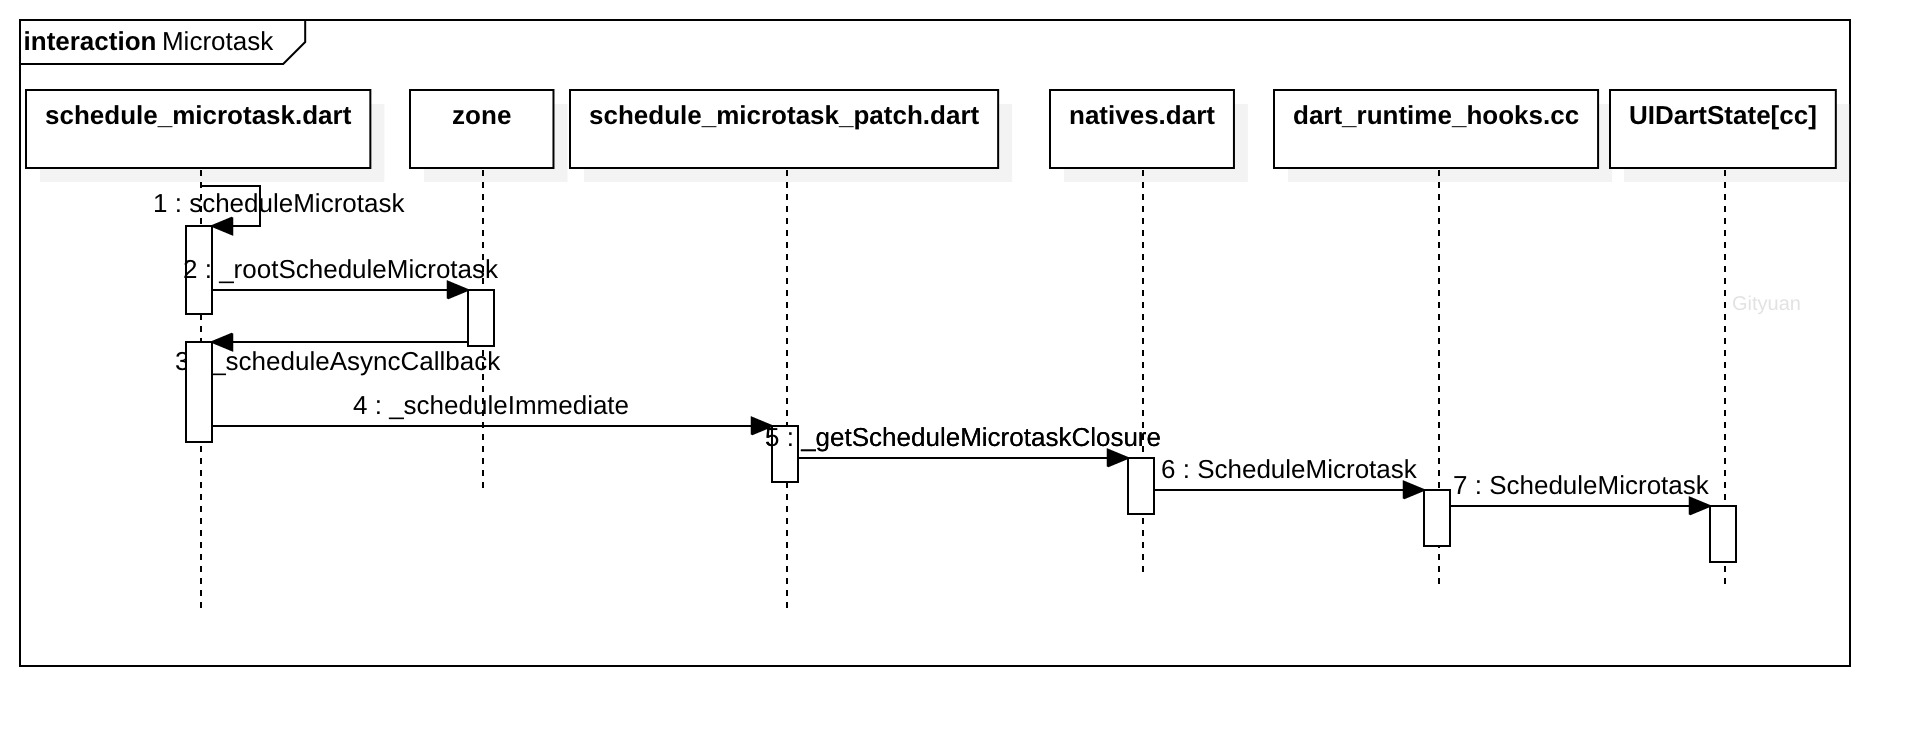 ScheduleMicrotask